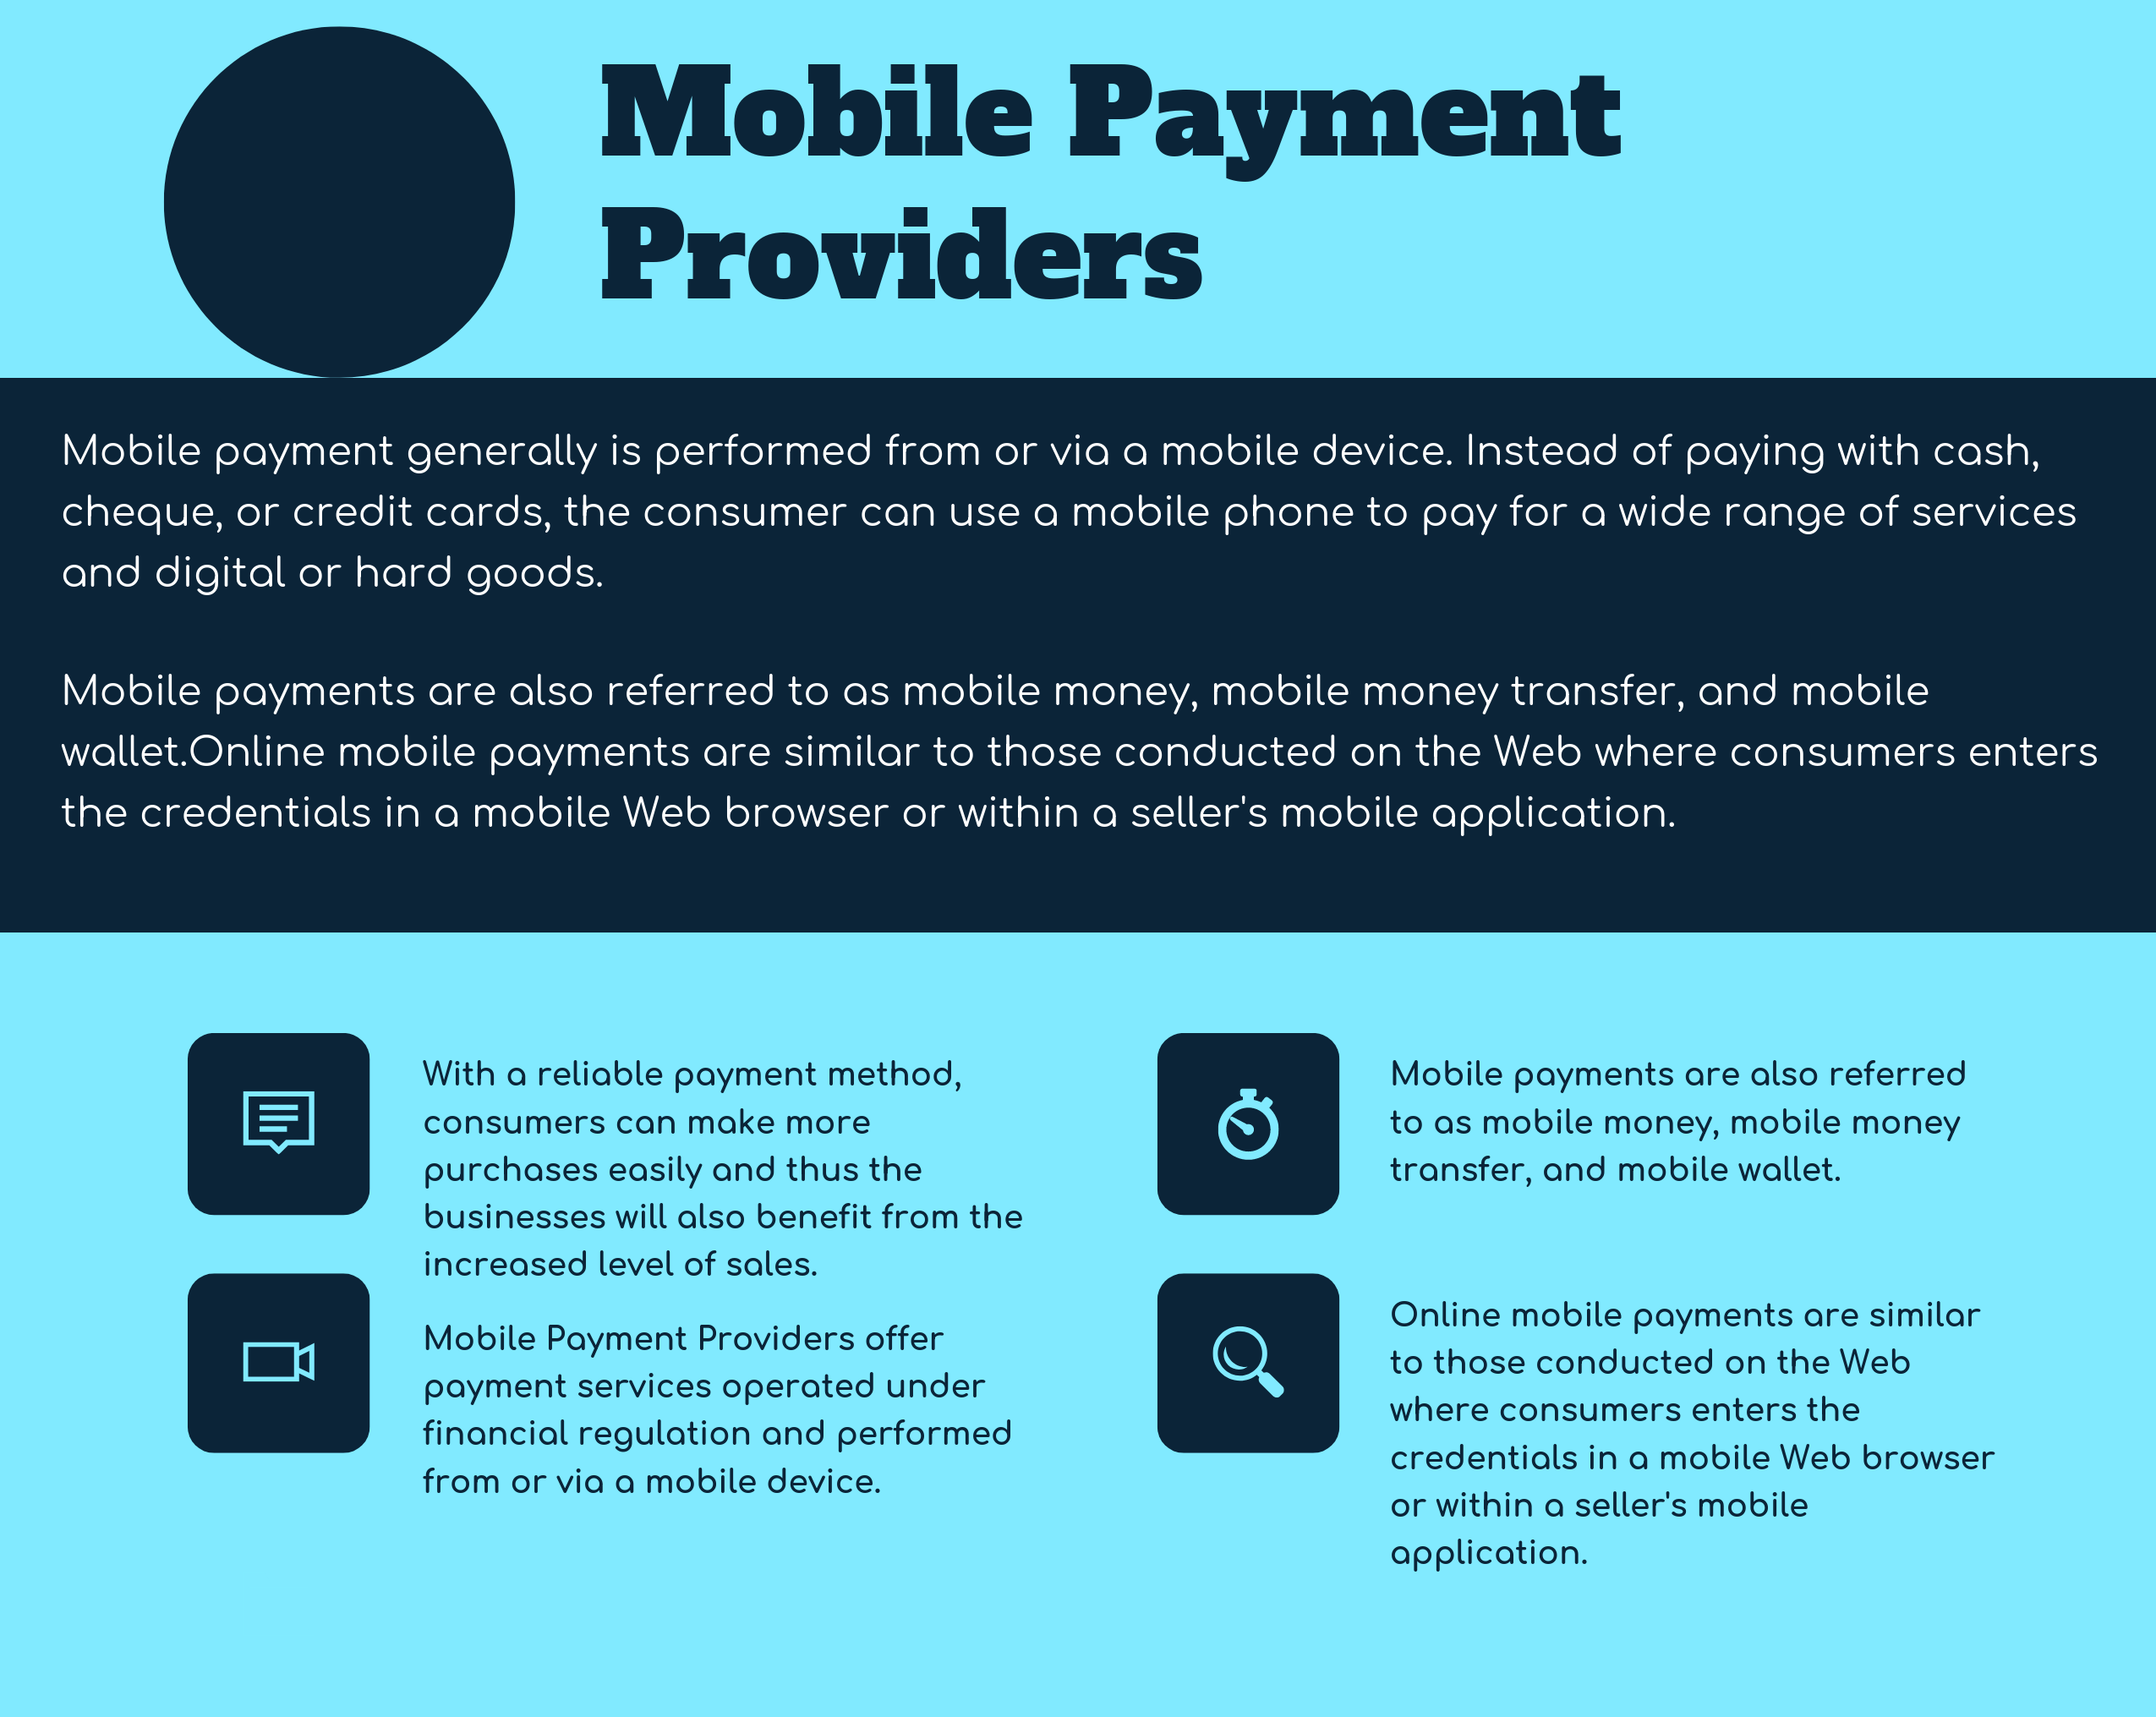 What are Mobile Payment Providers